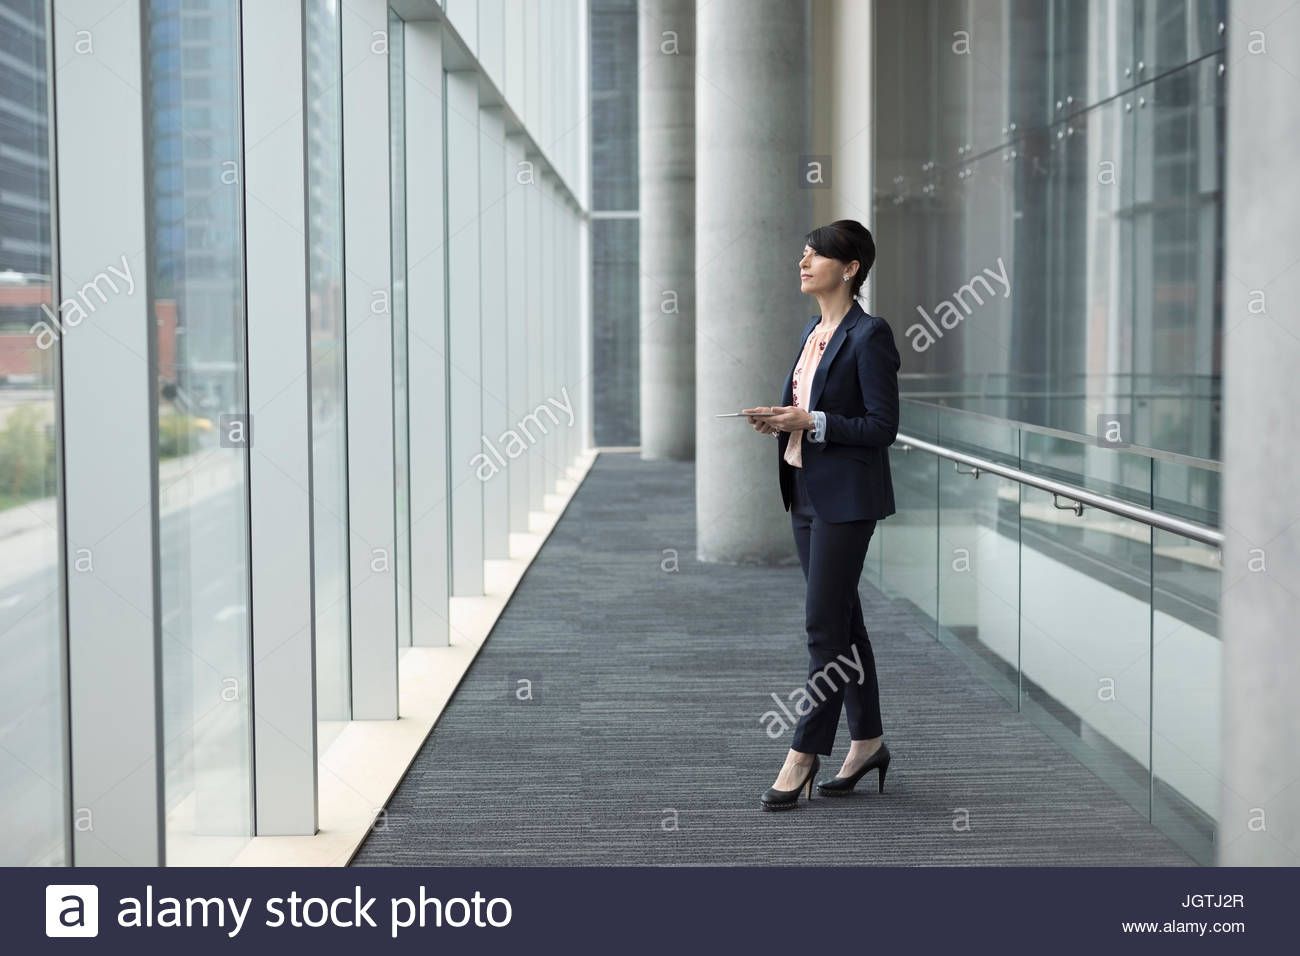 Pensive businesswoman with cell phone looking out office window - Stock Image